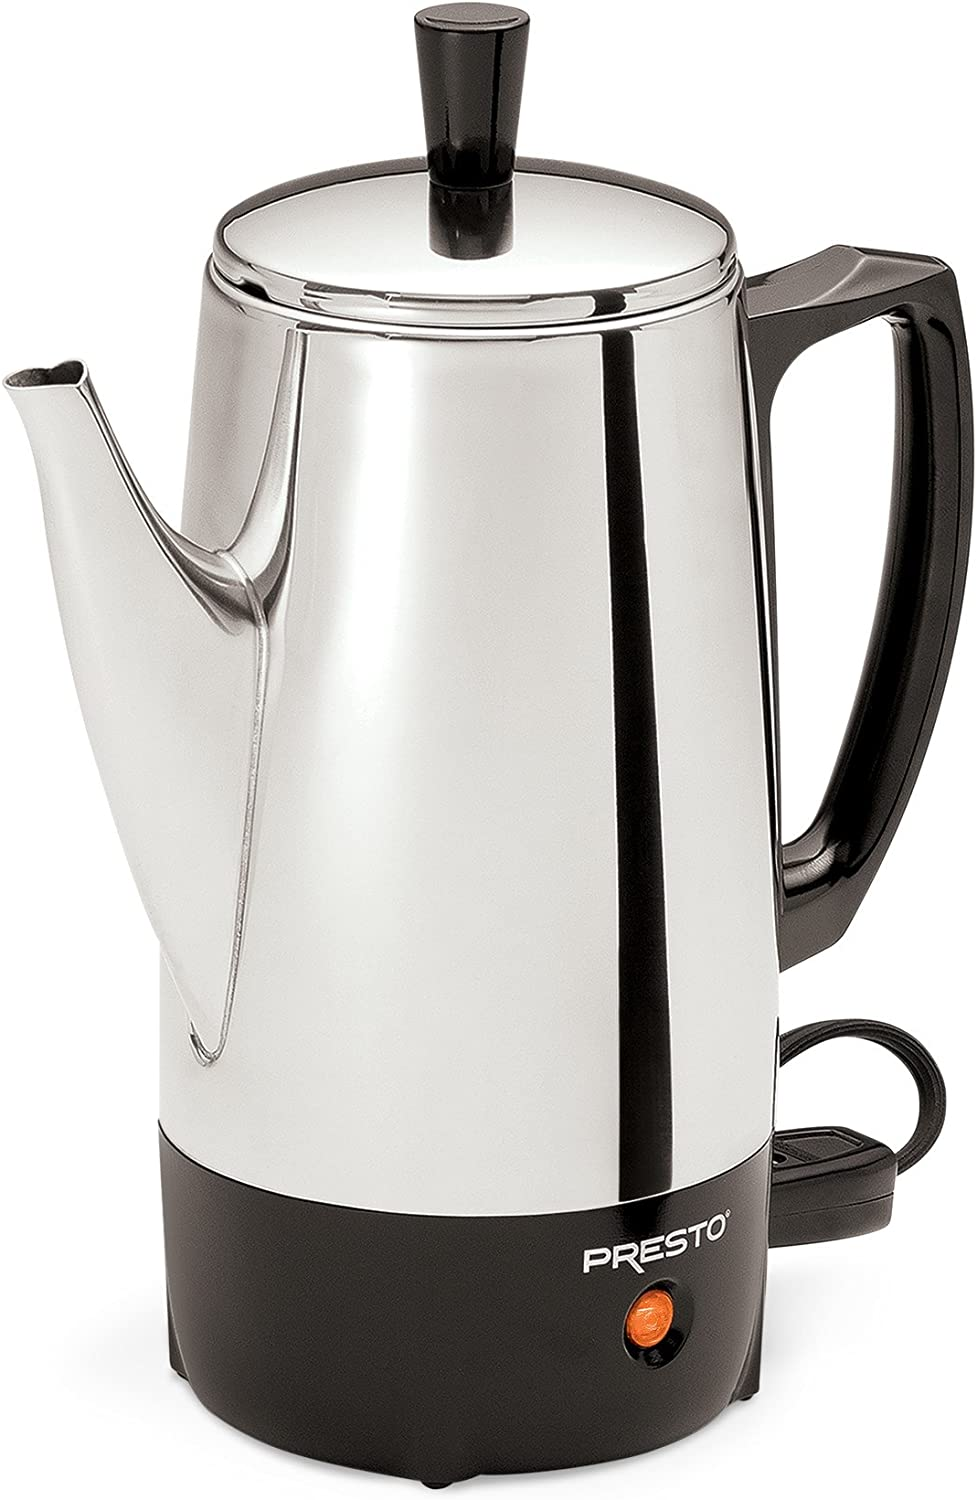 Presto 2822 6 Cup Coffee Percolator Stainless Steel Thermal